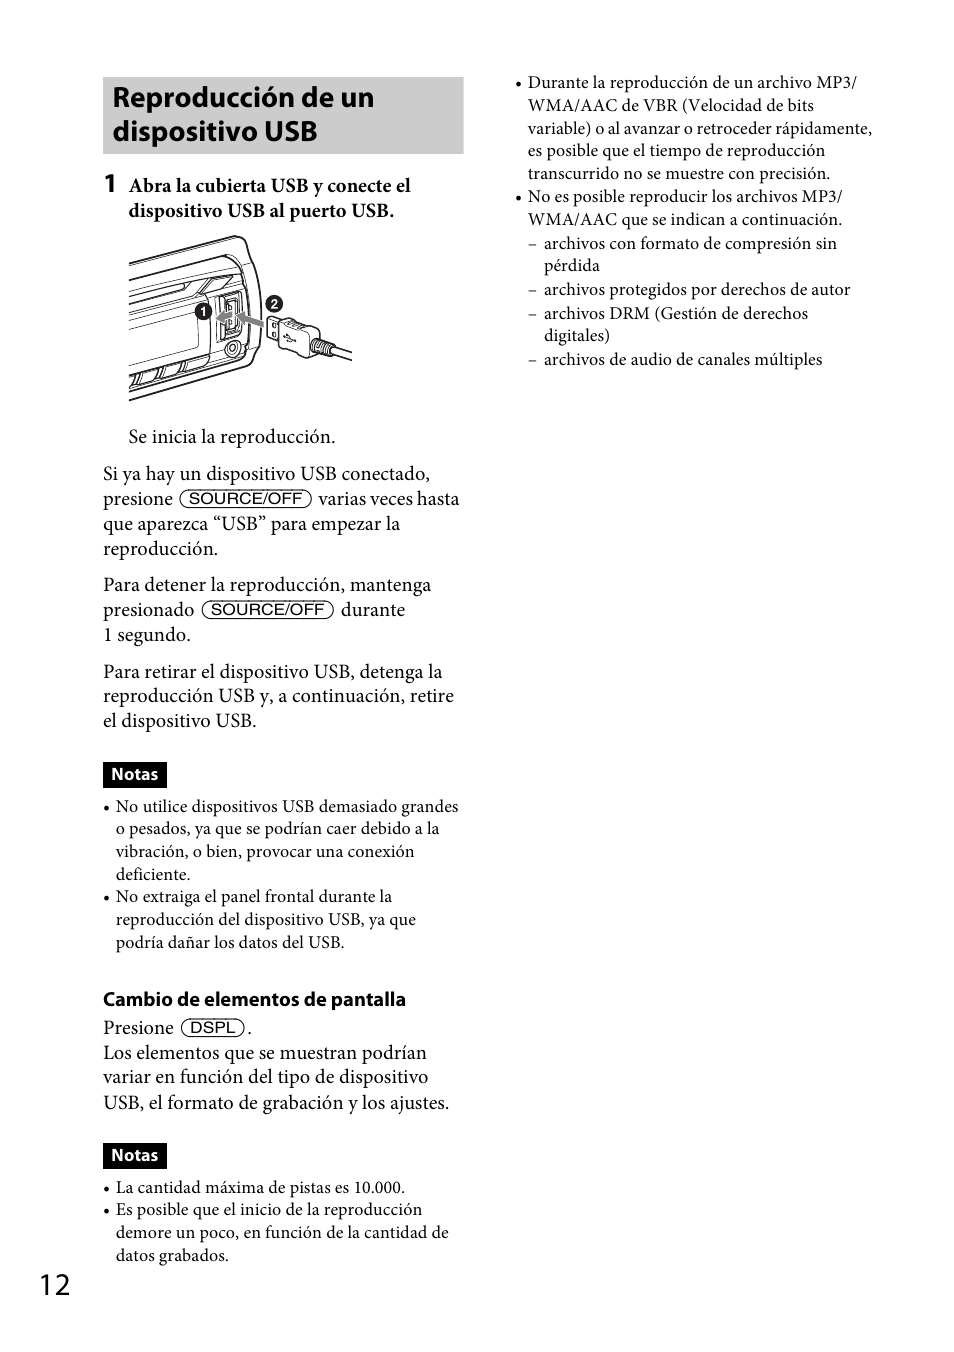 hight resolution of reproducci n de un dispositivo usb sony cdx gt570up user manual page 76